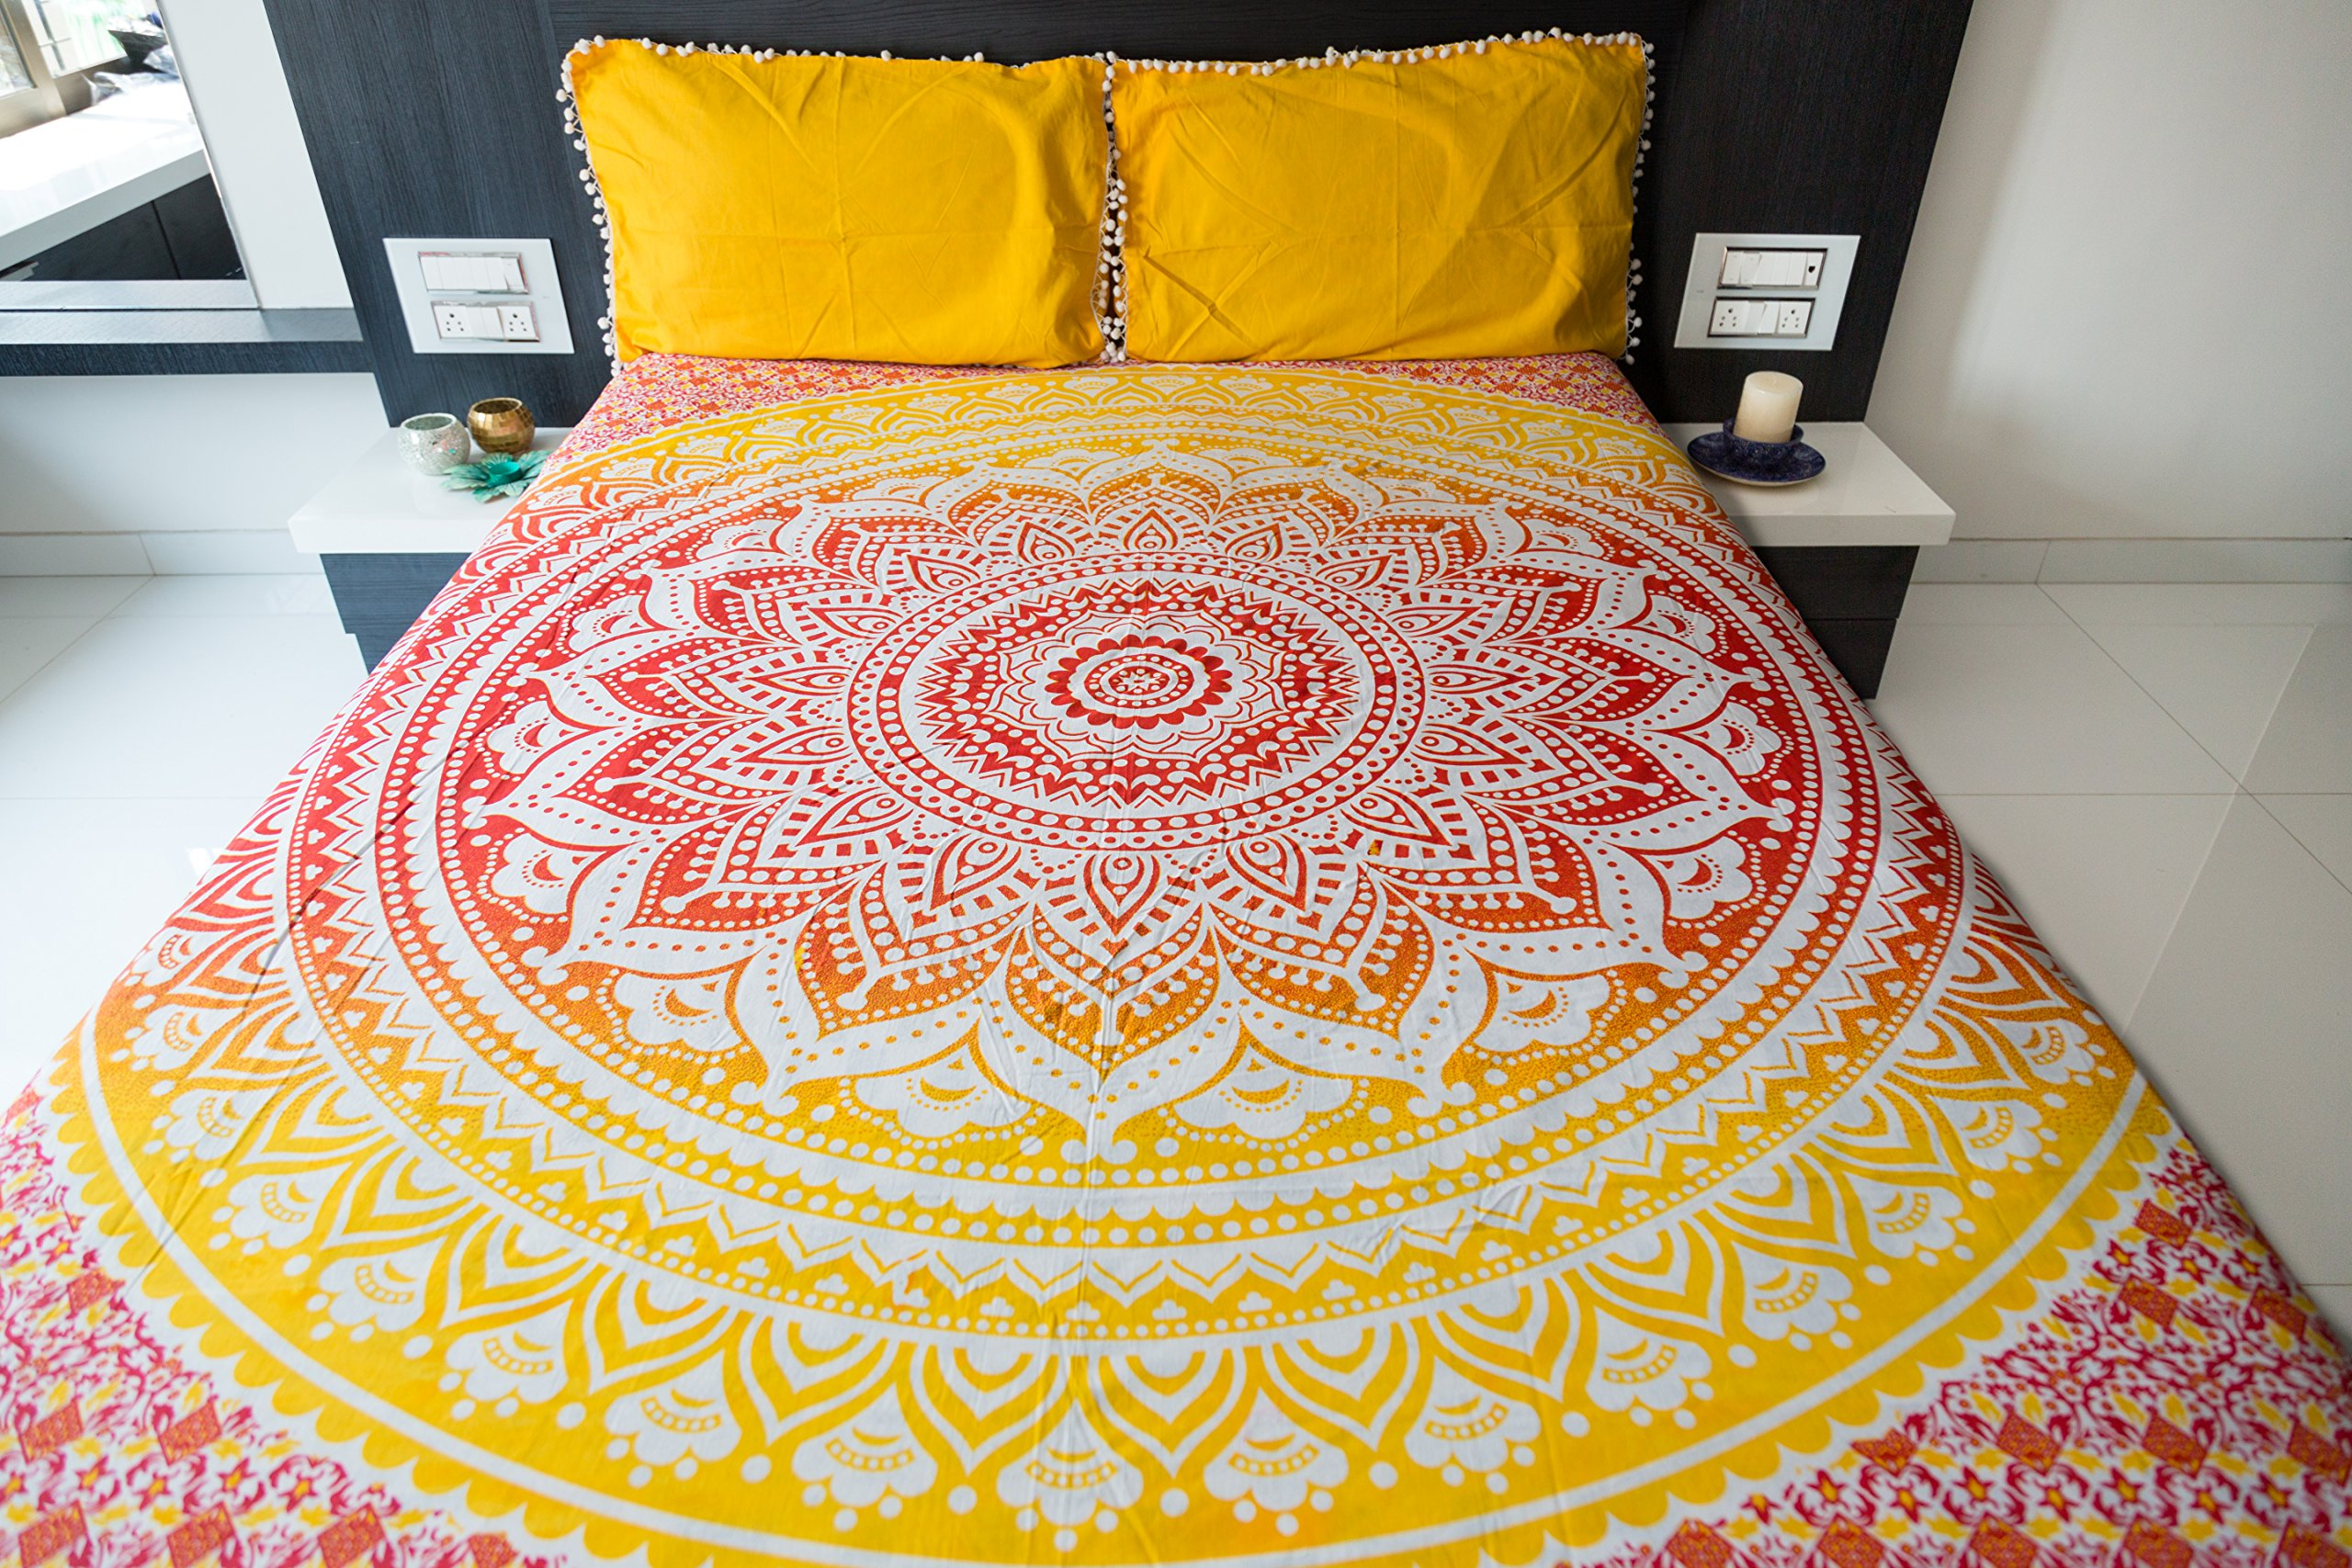 Ombre Mandala Bedspread with Pillow Covers, Indian Bohemian Tapestry Wall Hanging, Picnic Blanket or Hippie Beach Throw, Hippy Mandala Bedding for Bedroom Decor, Queen Size Sunset Hue Boho Tapestry